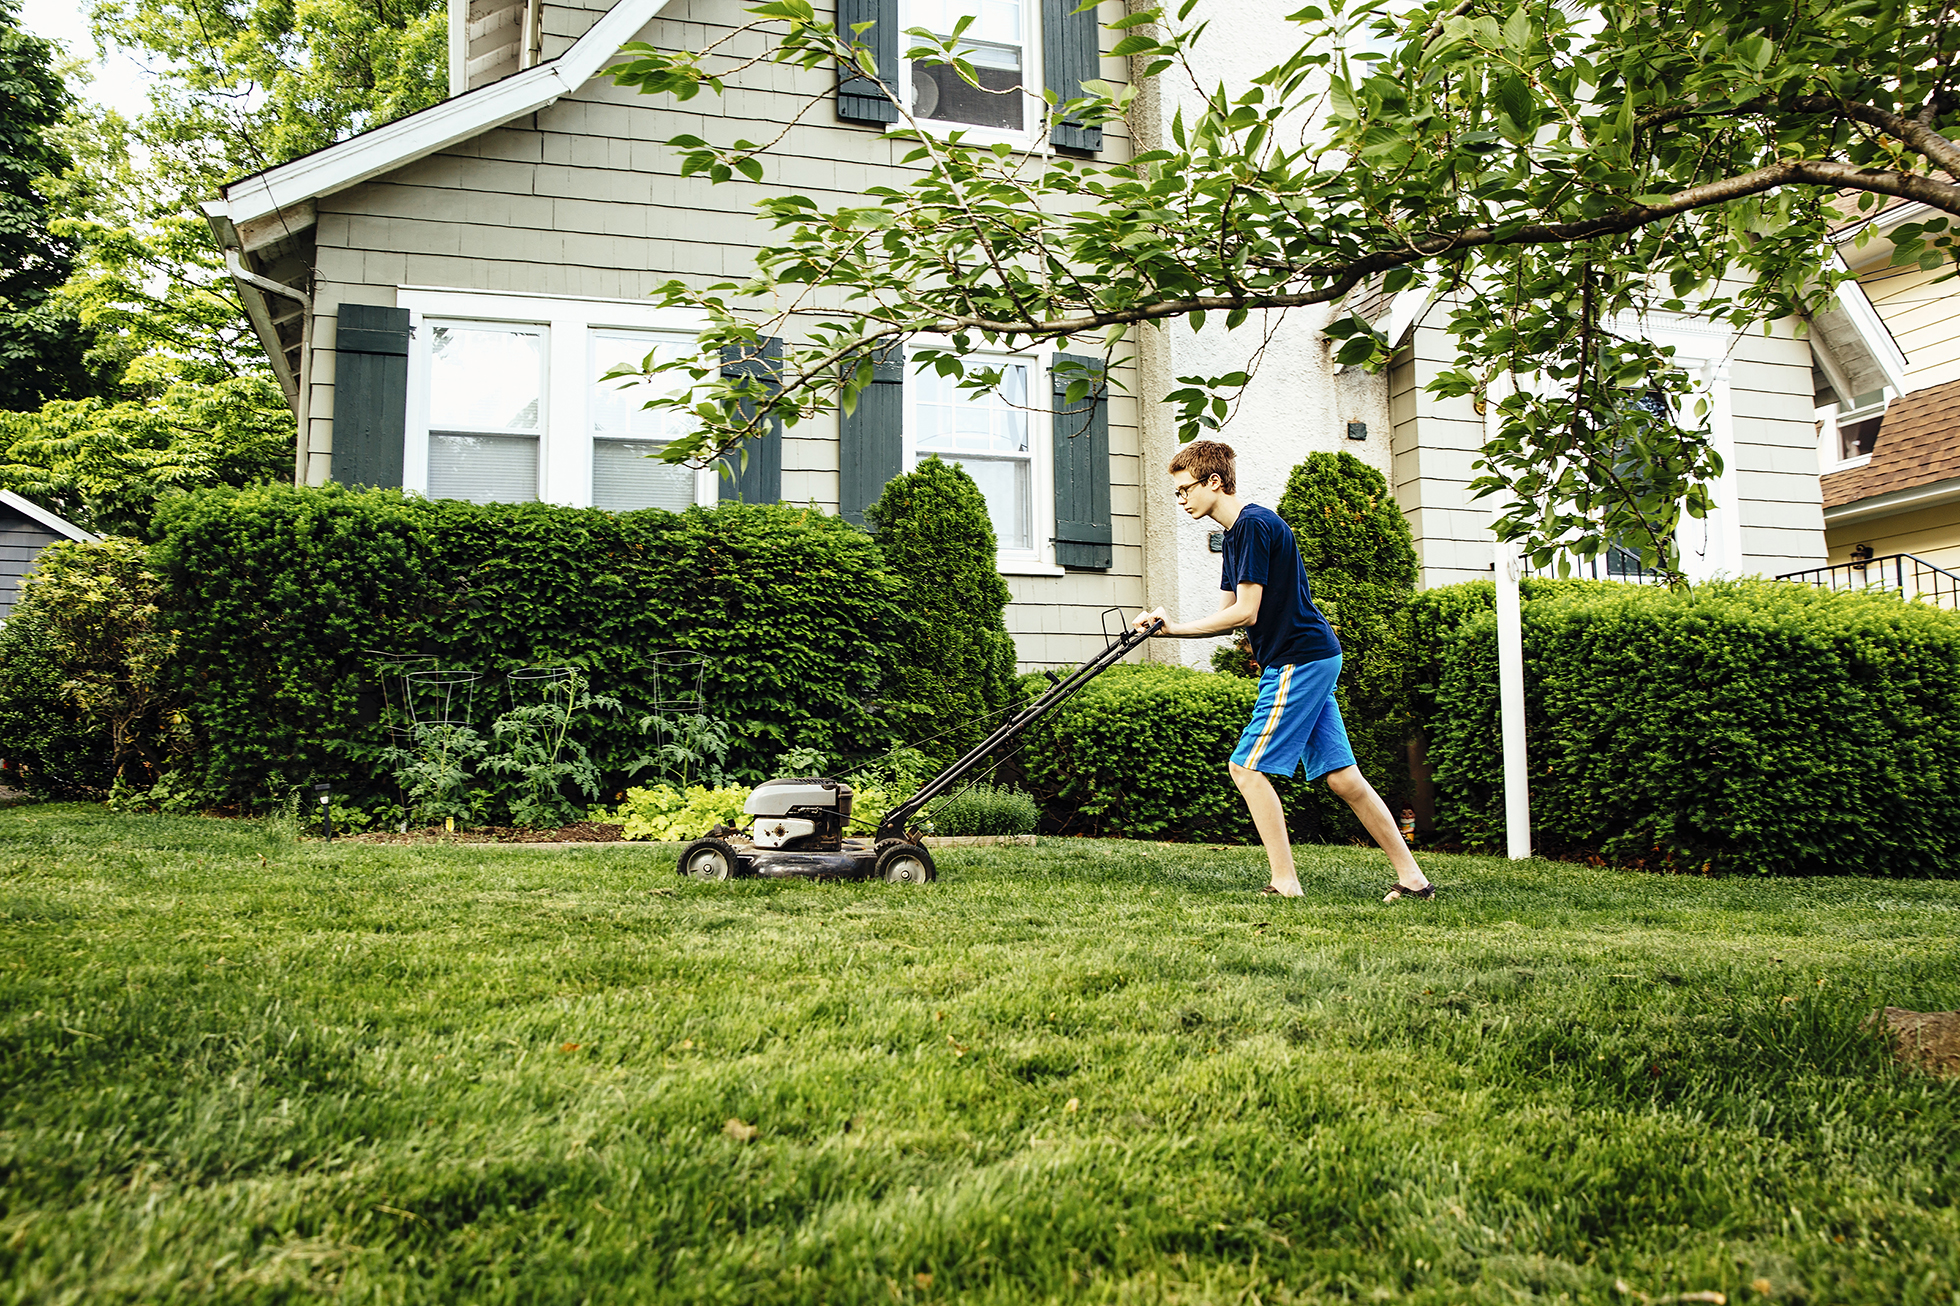 Tween boy in blue mowing lawn outside light green house